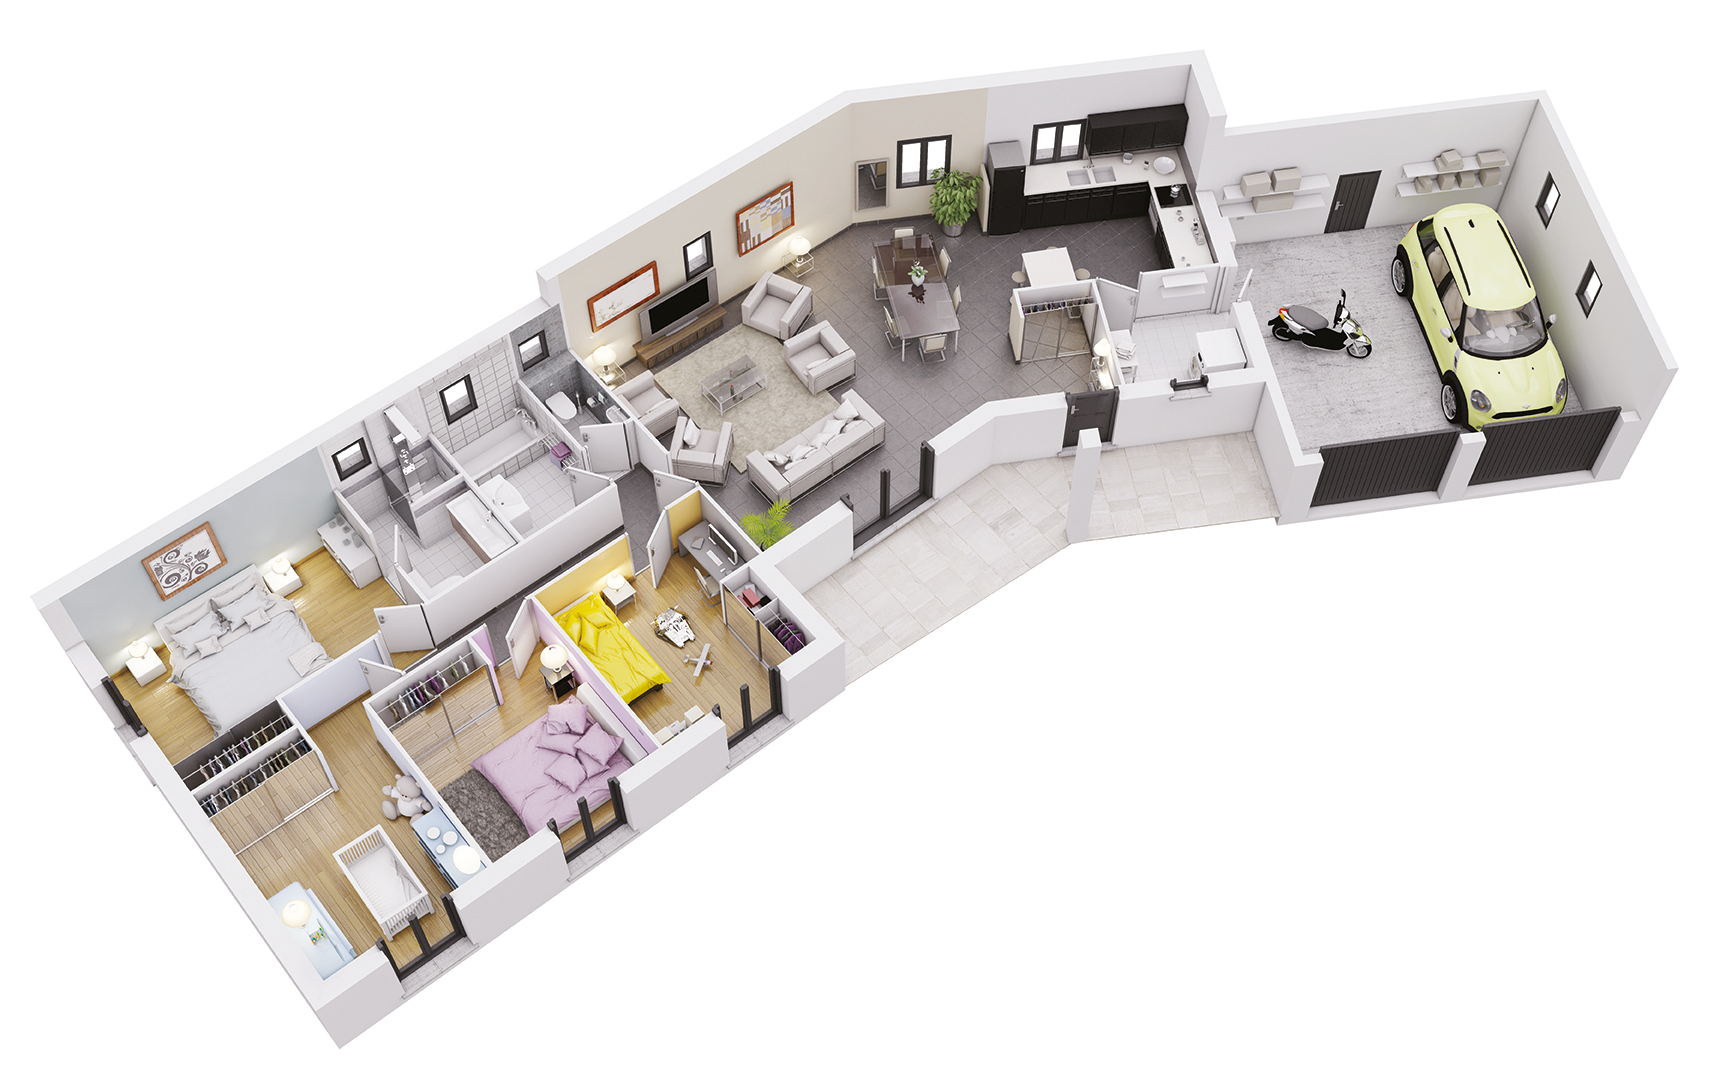 Plan maison traditionnelle mod le cr aria soleil cr a for Modele de maison moderne interieur